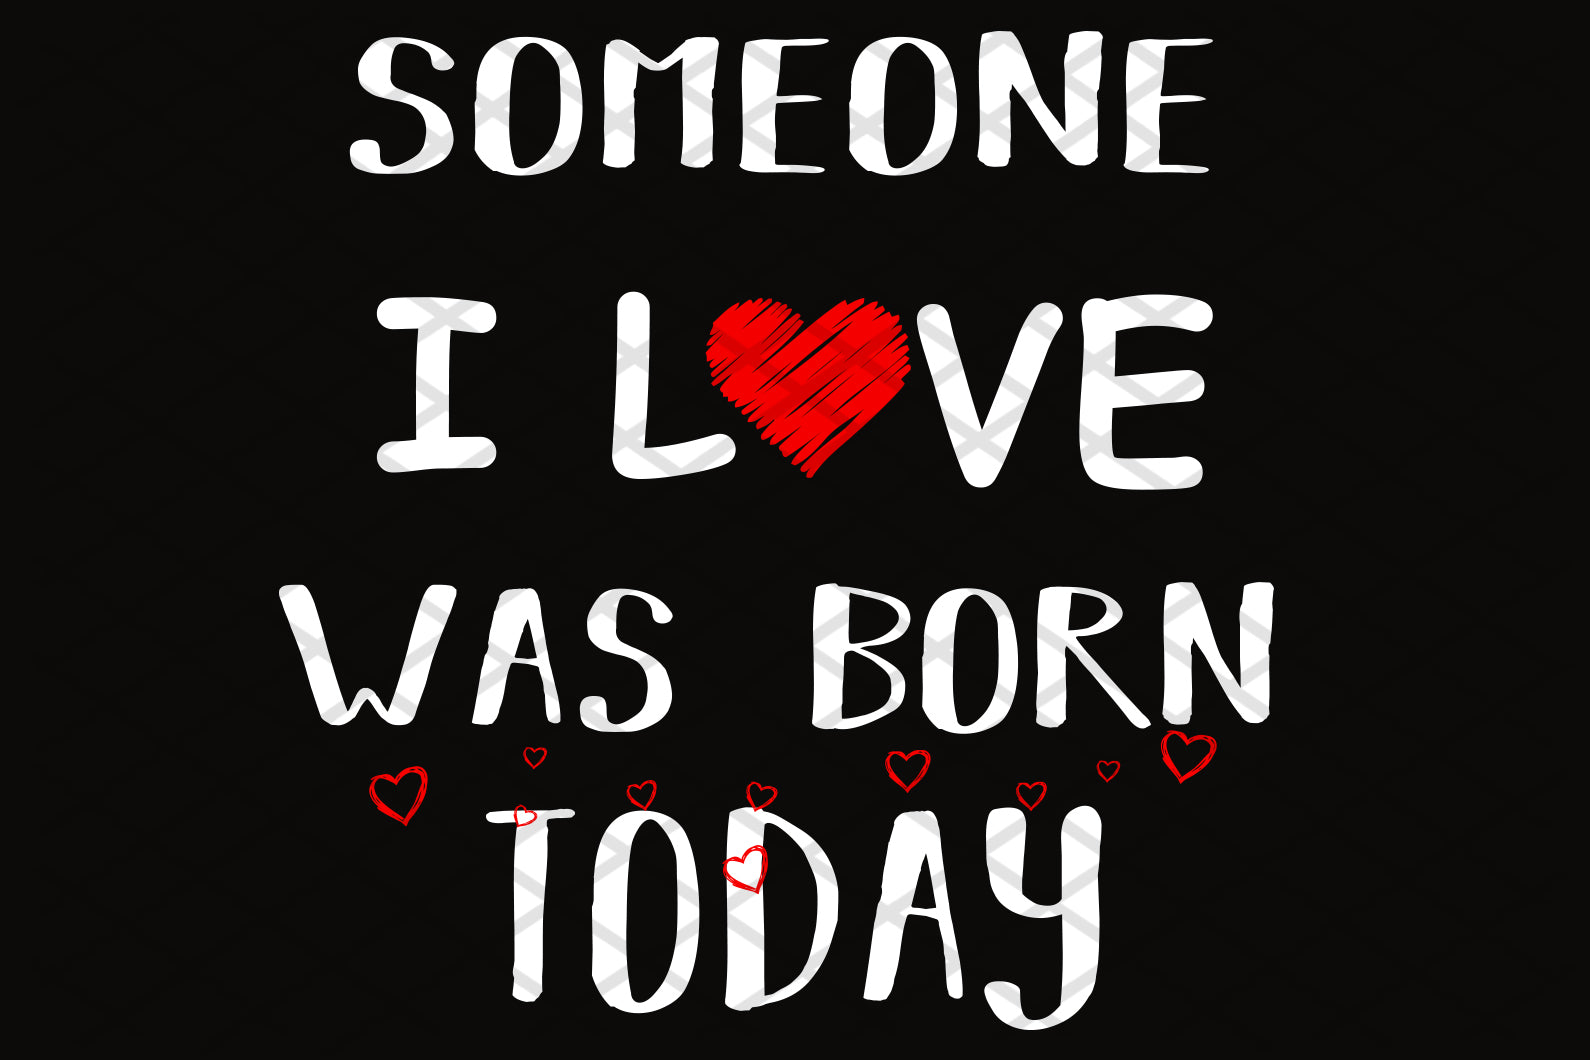 Someone I love was born today,digital file, vinyl for cricut, 1st birthday gift, 1st birthday party, birthday anniversary, birthday shirt, birthday boy, gift from parents svg cut files, svg clipart, silhouette svg, cricut svg files, decal and vinyl,